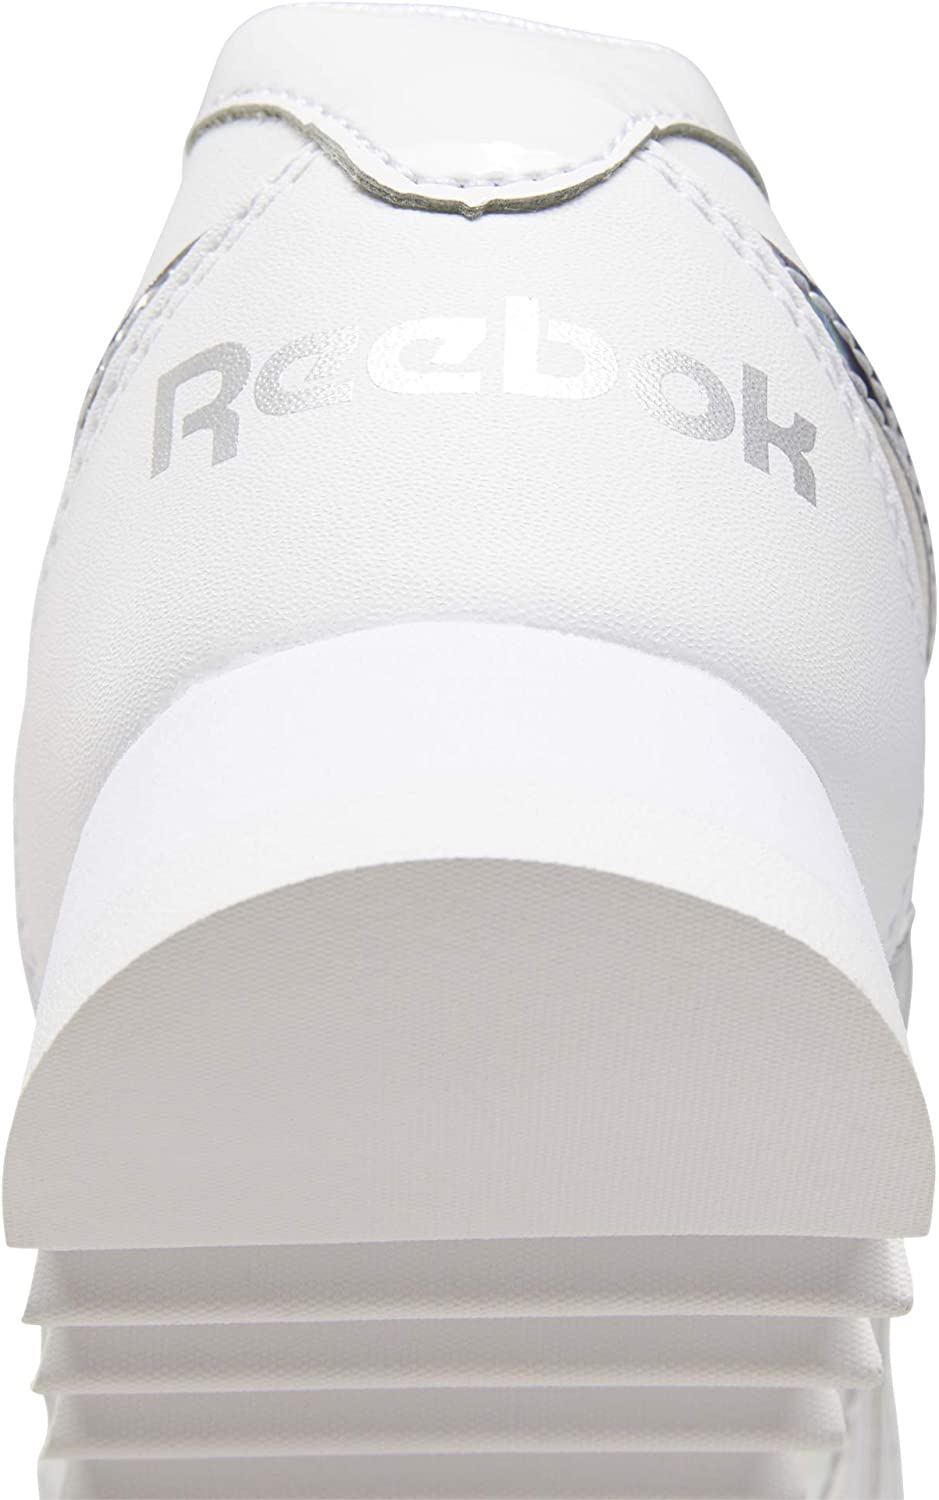 Reebok Royal Cljog 2 Platform Chaussures de Running Comp/étition Fille